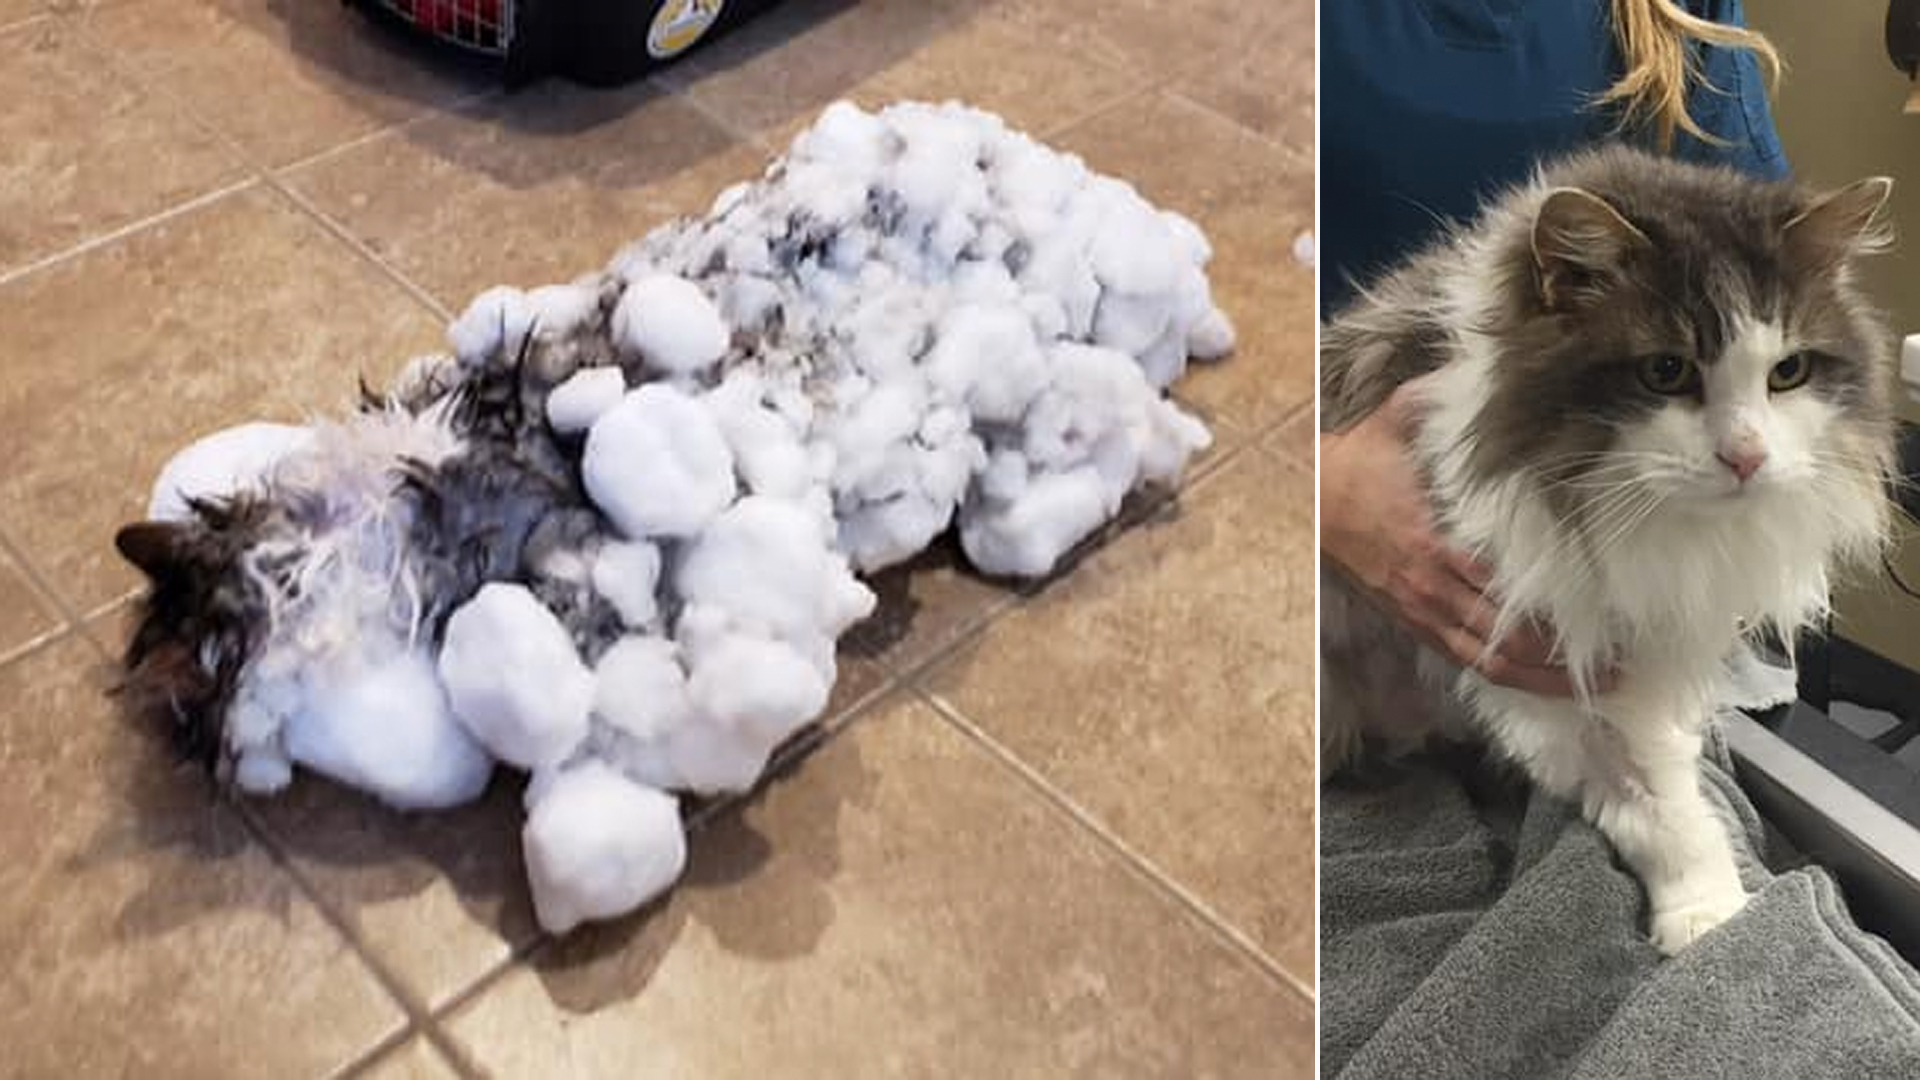 Before and after photos of Fluffy were provided by the Animal Clinic of Kalispell.